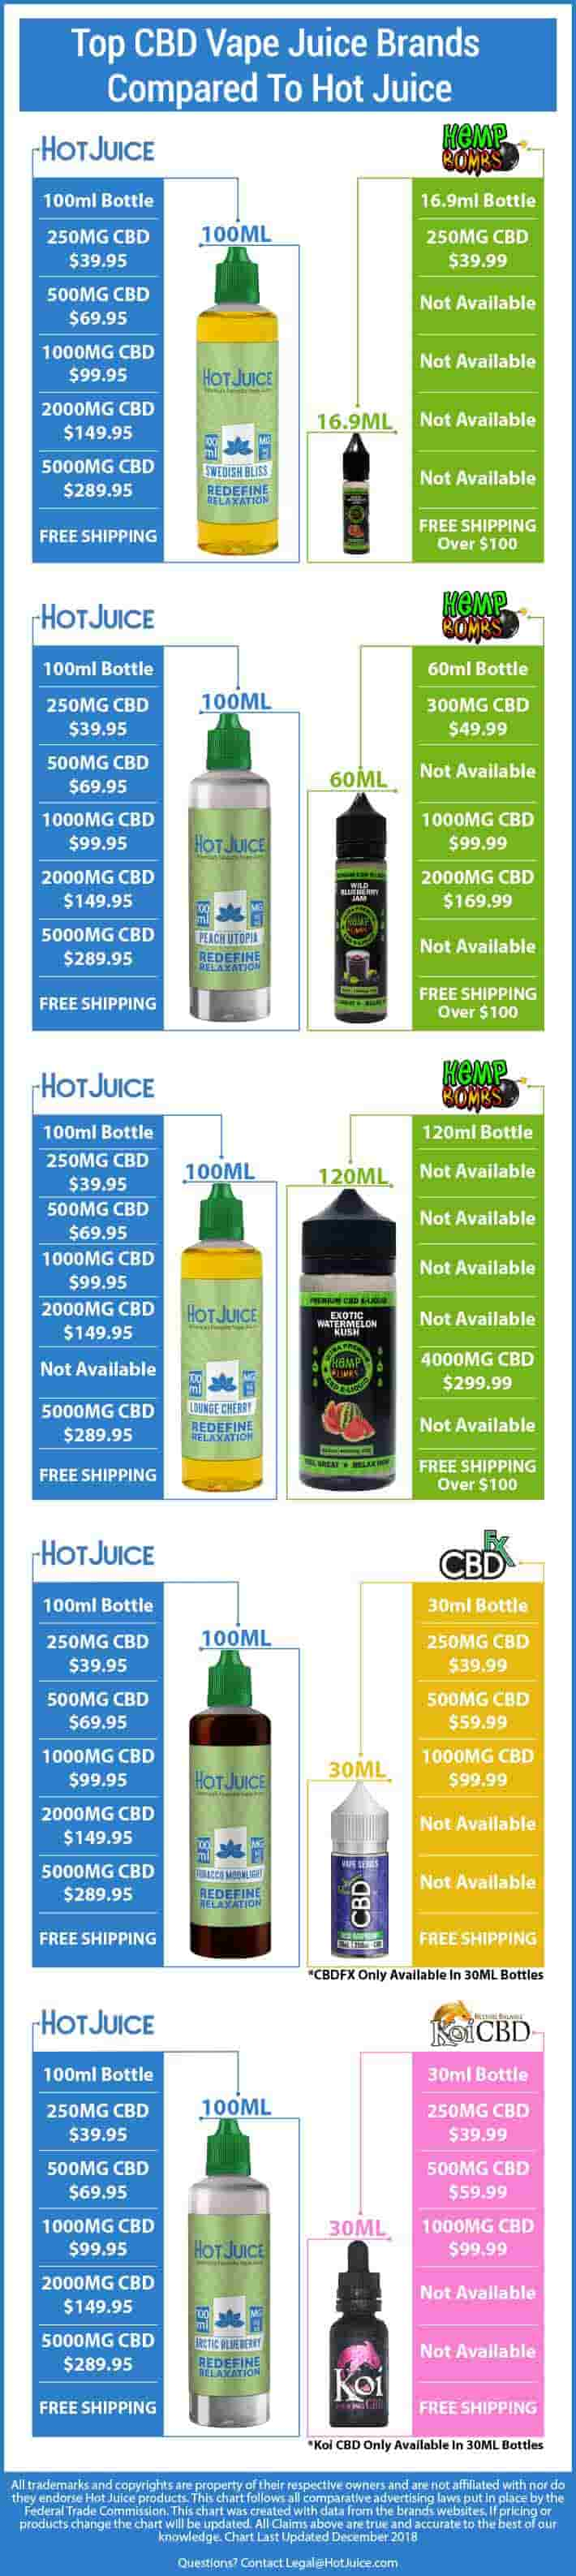 CBD Vape Juice Brand Comparison 2